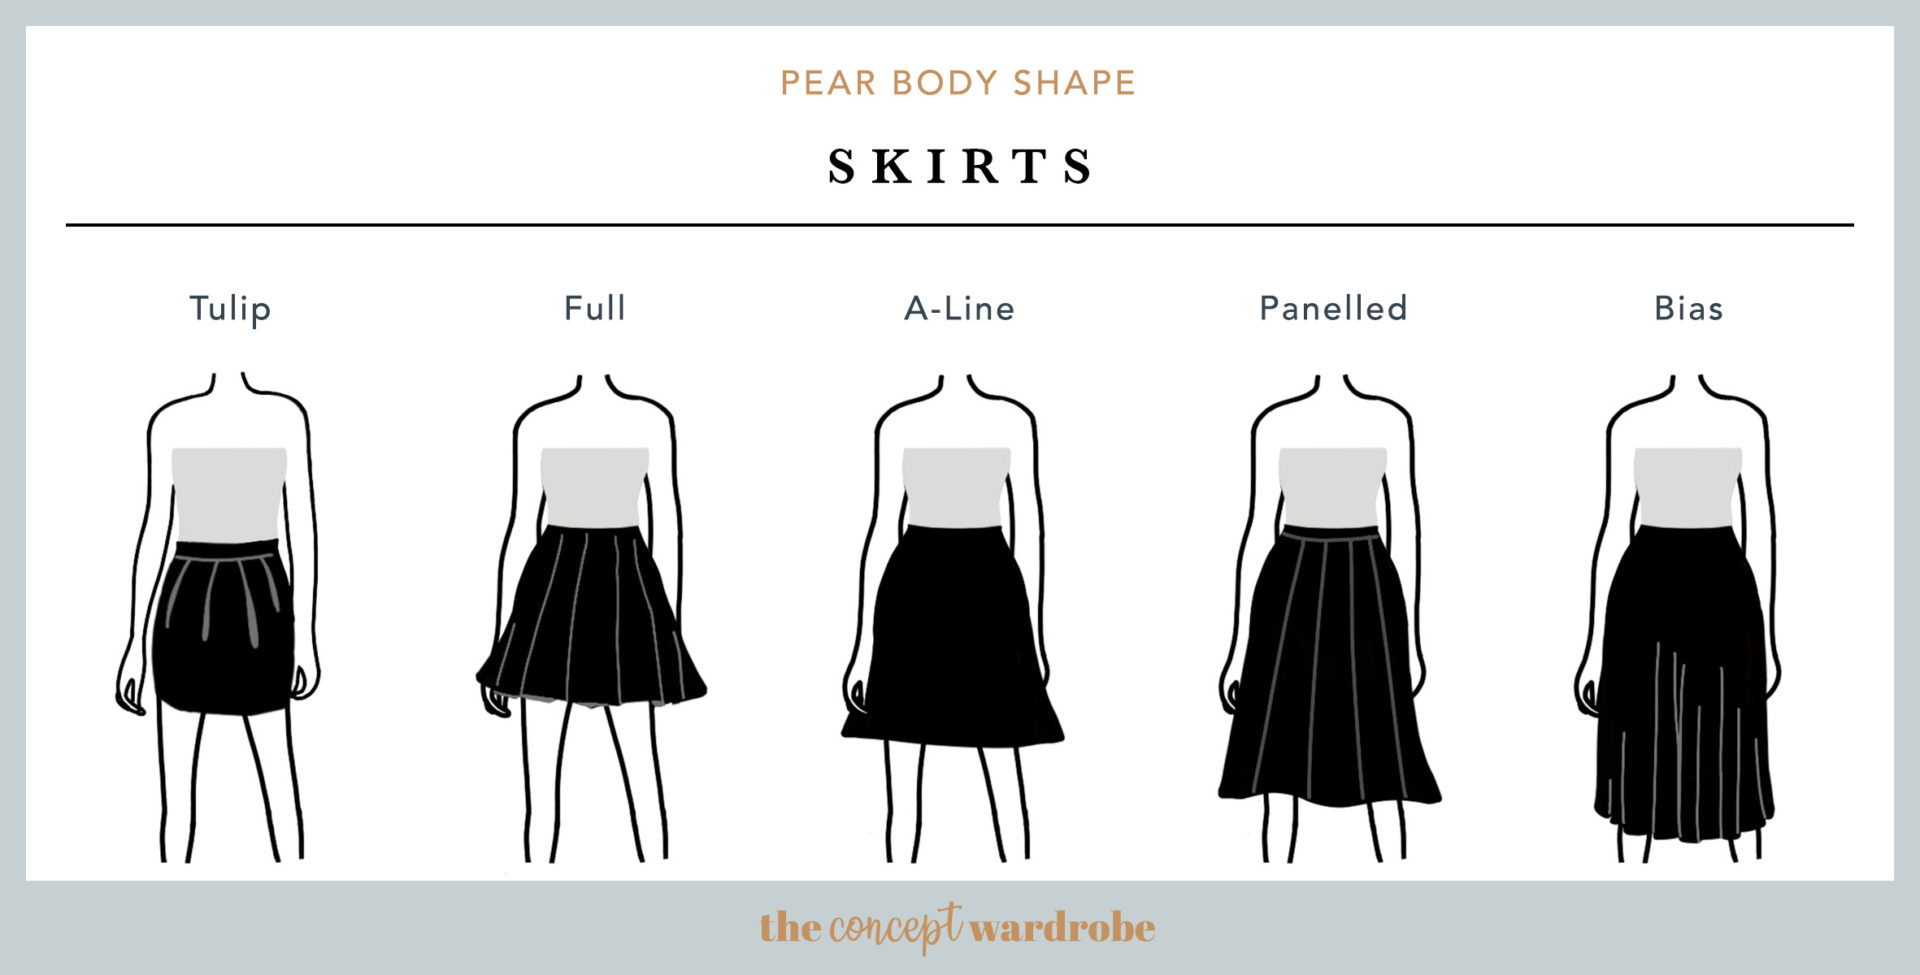 How To Dress The Pear Body Shape  the concept wardrobe